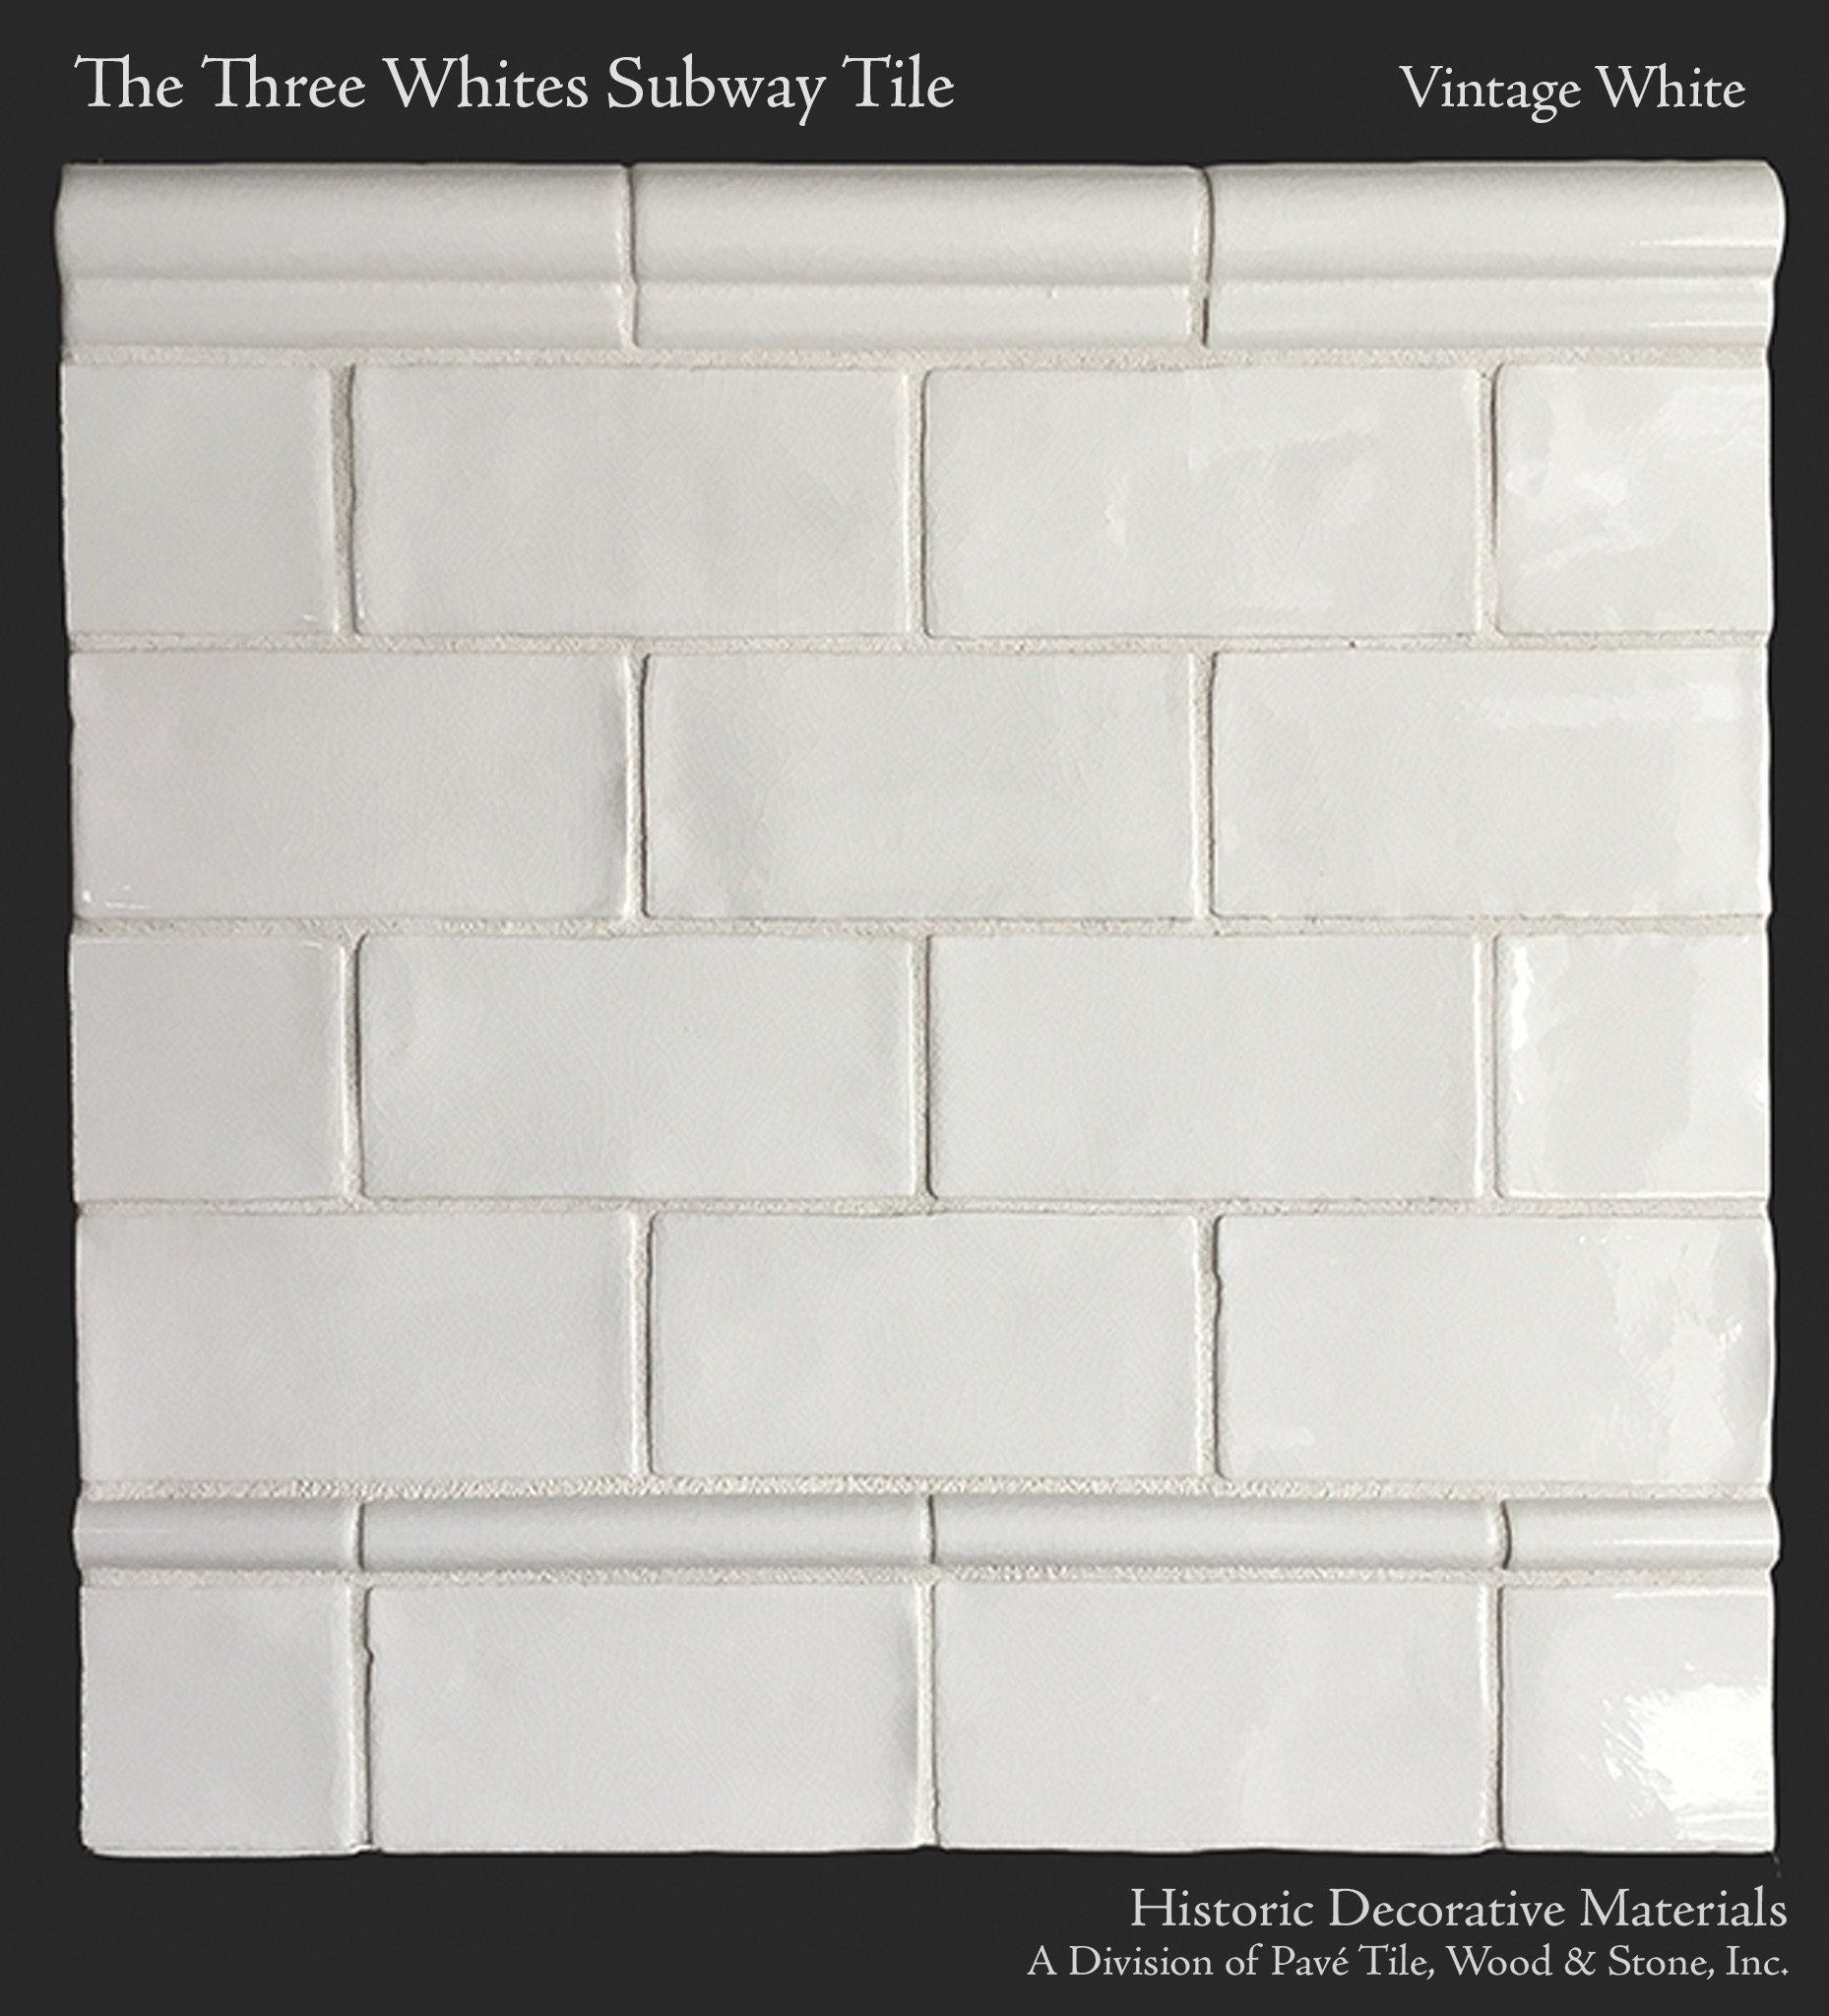 The Three Whites Glazed Ceramic 3 X 6 Subway Tile Collection In Vintage White French Oak Flooring Tuscan Decorating Subway Tile